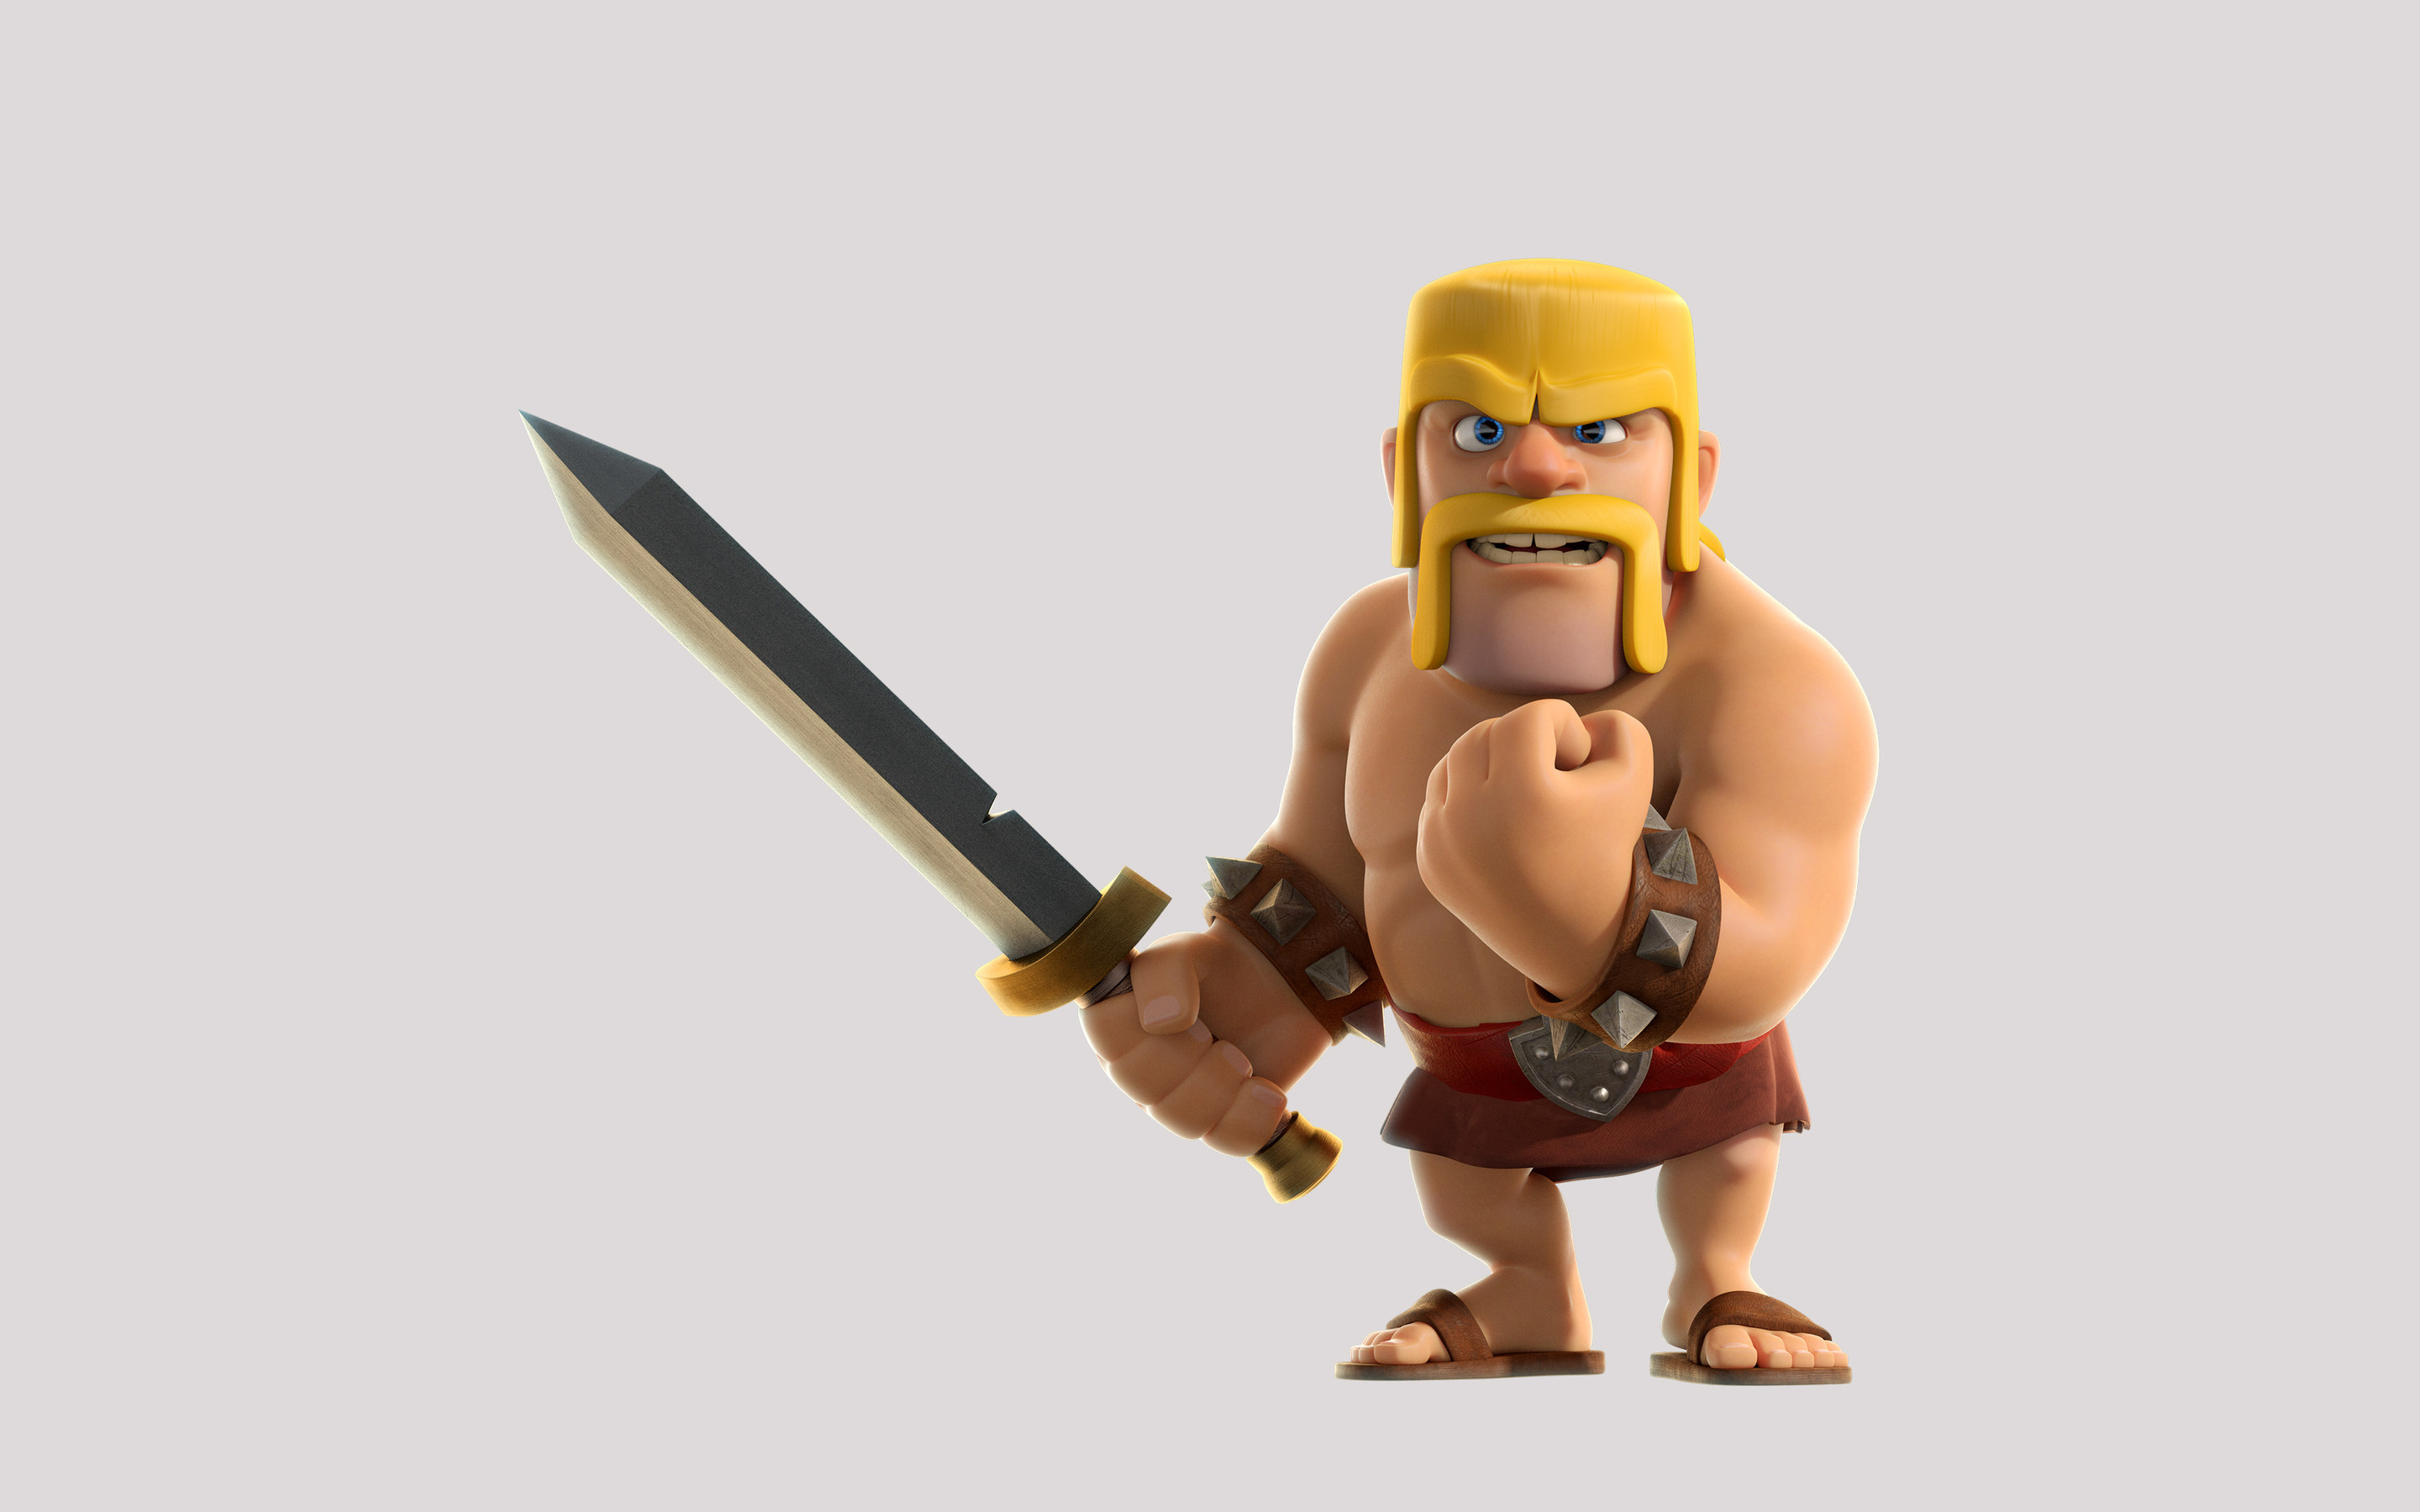 Barbarian Clash Of Clans Hd Hd Games 4k Wallpapers: Picture Of Clash Of Clans Barbarian